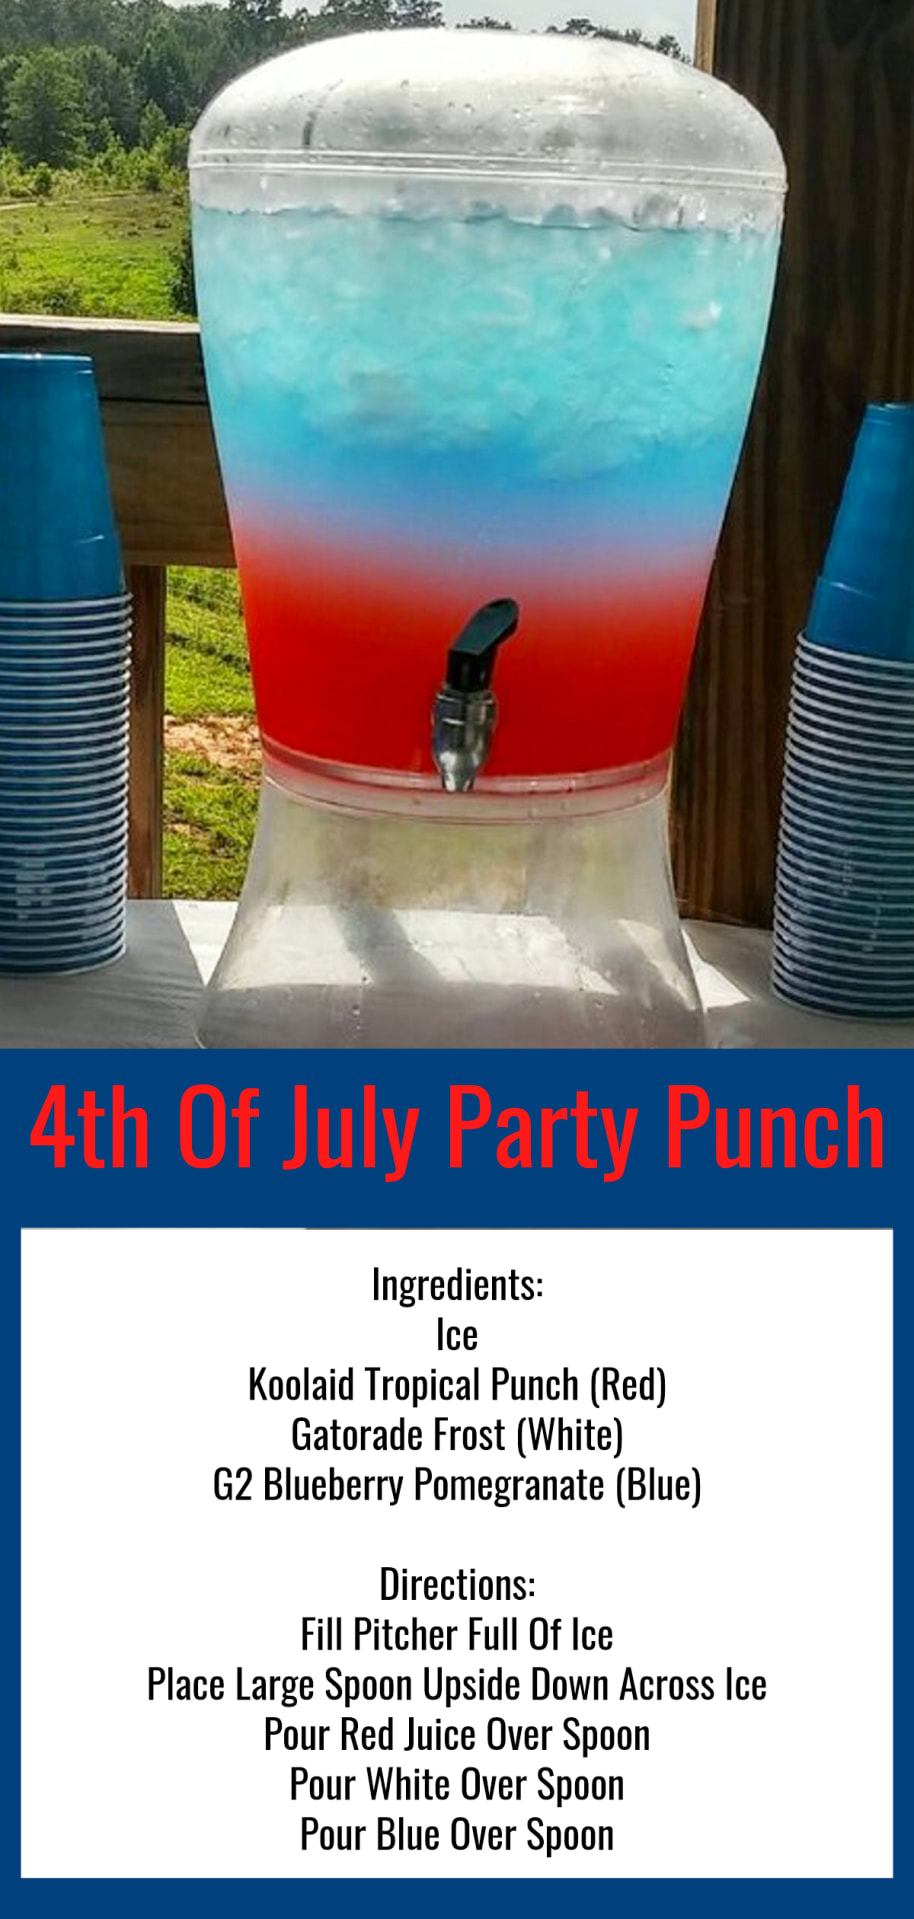 4th of July Punch Recipe - Nonalcoholic Red White and Blue Layered Party Punch for kids and those who are NOT drinking alcohol at your 4th of July party.  Lots more 4th of July party ideas and party food ideas for your July 4th party, cookout, block party, picnic, BBQ or pool party. How to make red white and blue layered punch drinks for a crowd.